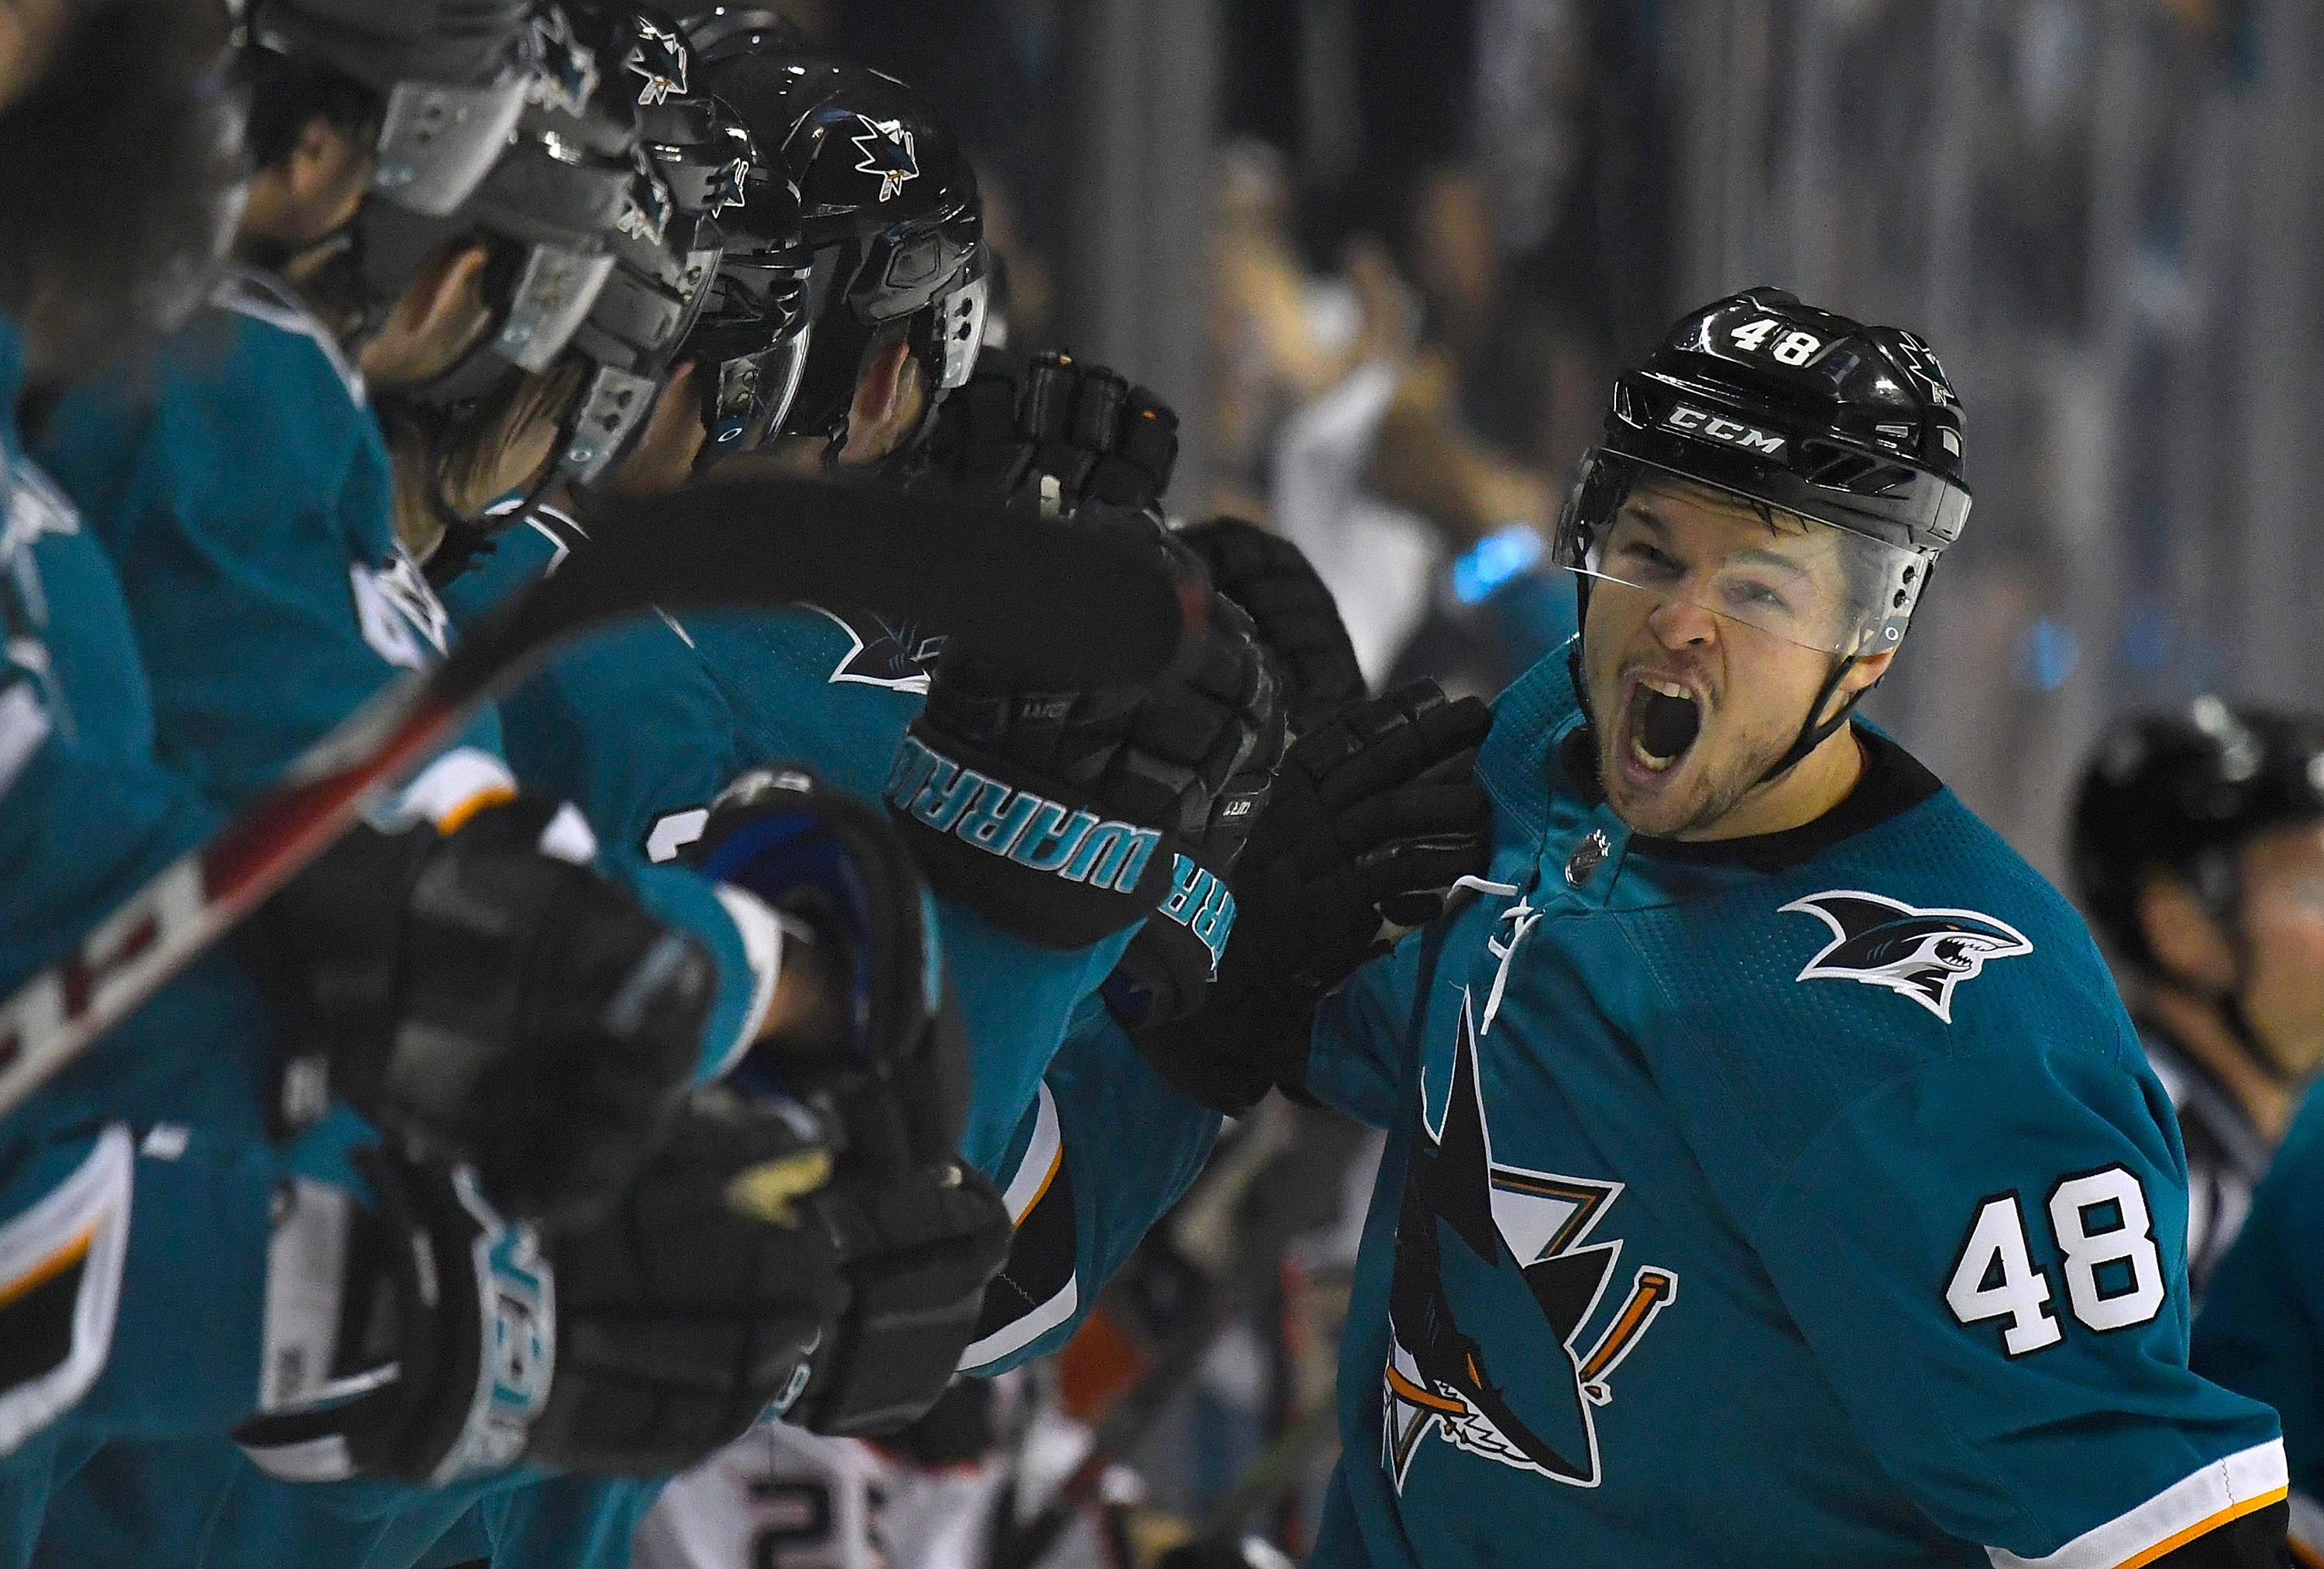 SAN JOSE, CA - APRIL 18: Tomas Hertl #48 of the San Jose Sharks is congratulated by teammates after scoring a goal against the Anaheim Ducks during the third period in Game Four of the Western Conference First Round during the 2018 NHL Stanley Cup Playoff